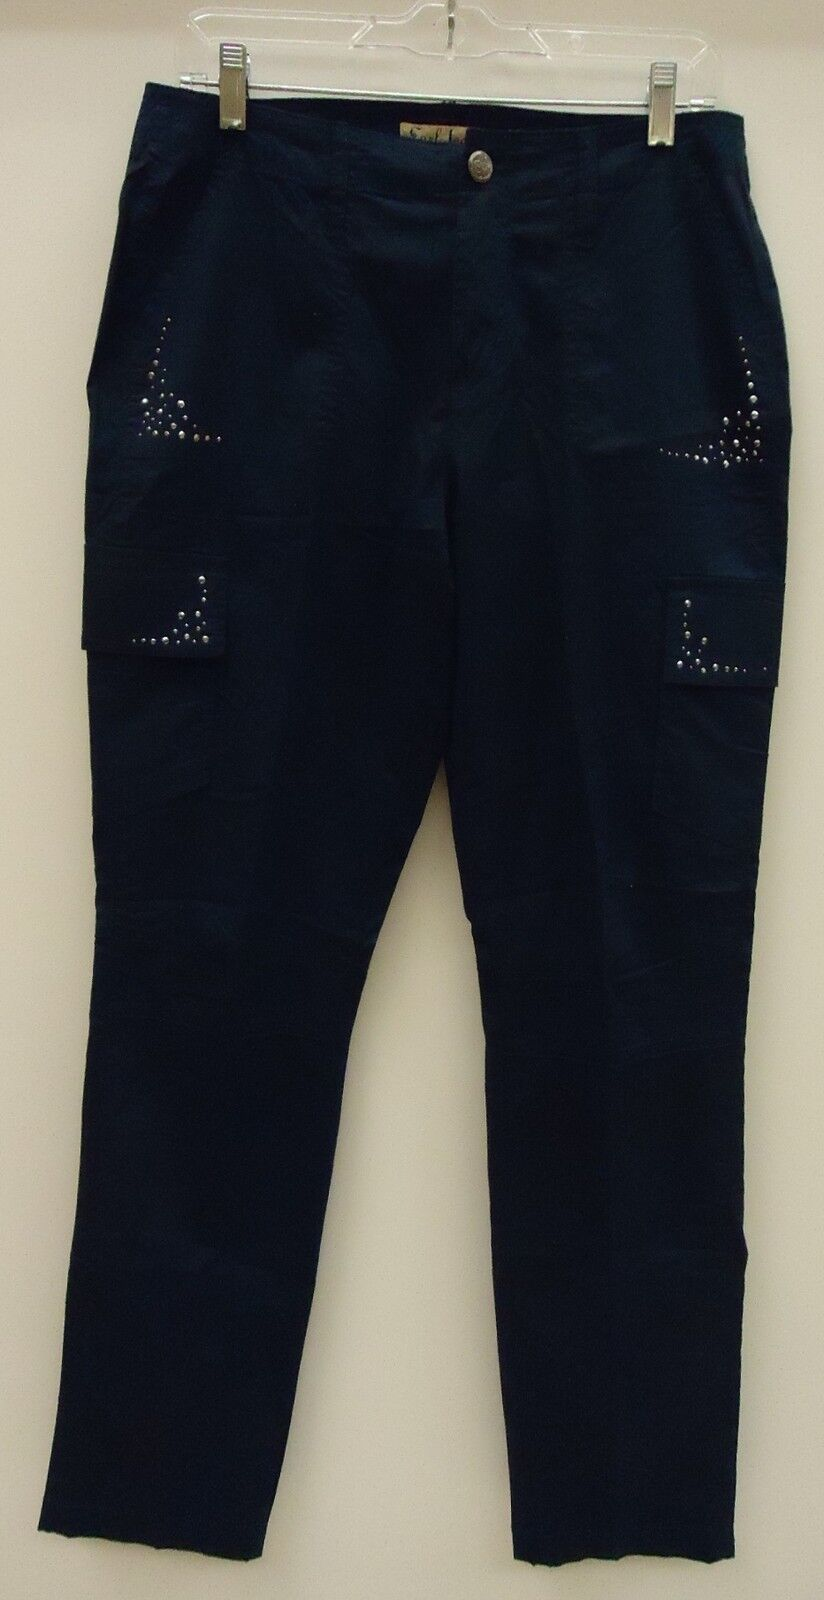 Earl Jean Cargo Pants Cotton Female Adult 10 Navy bluee Solid w  Studs BFEJ1